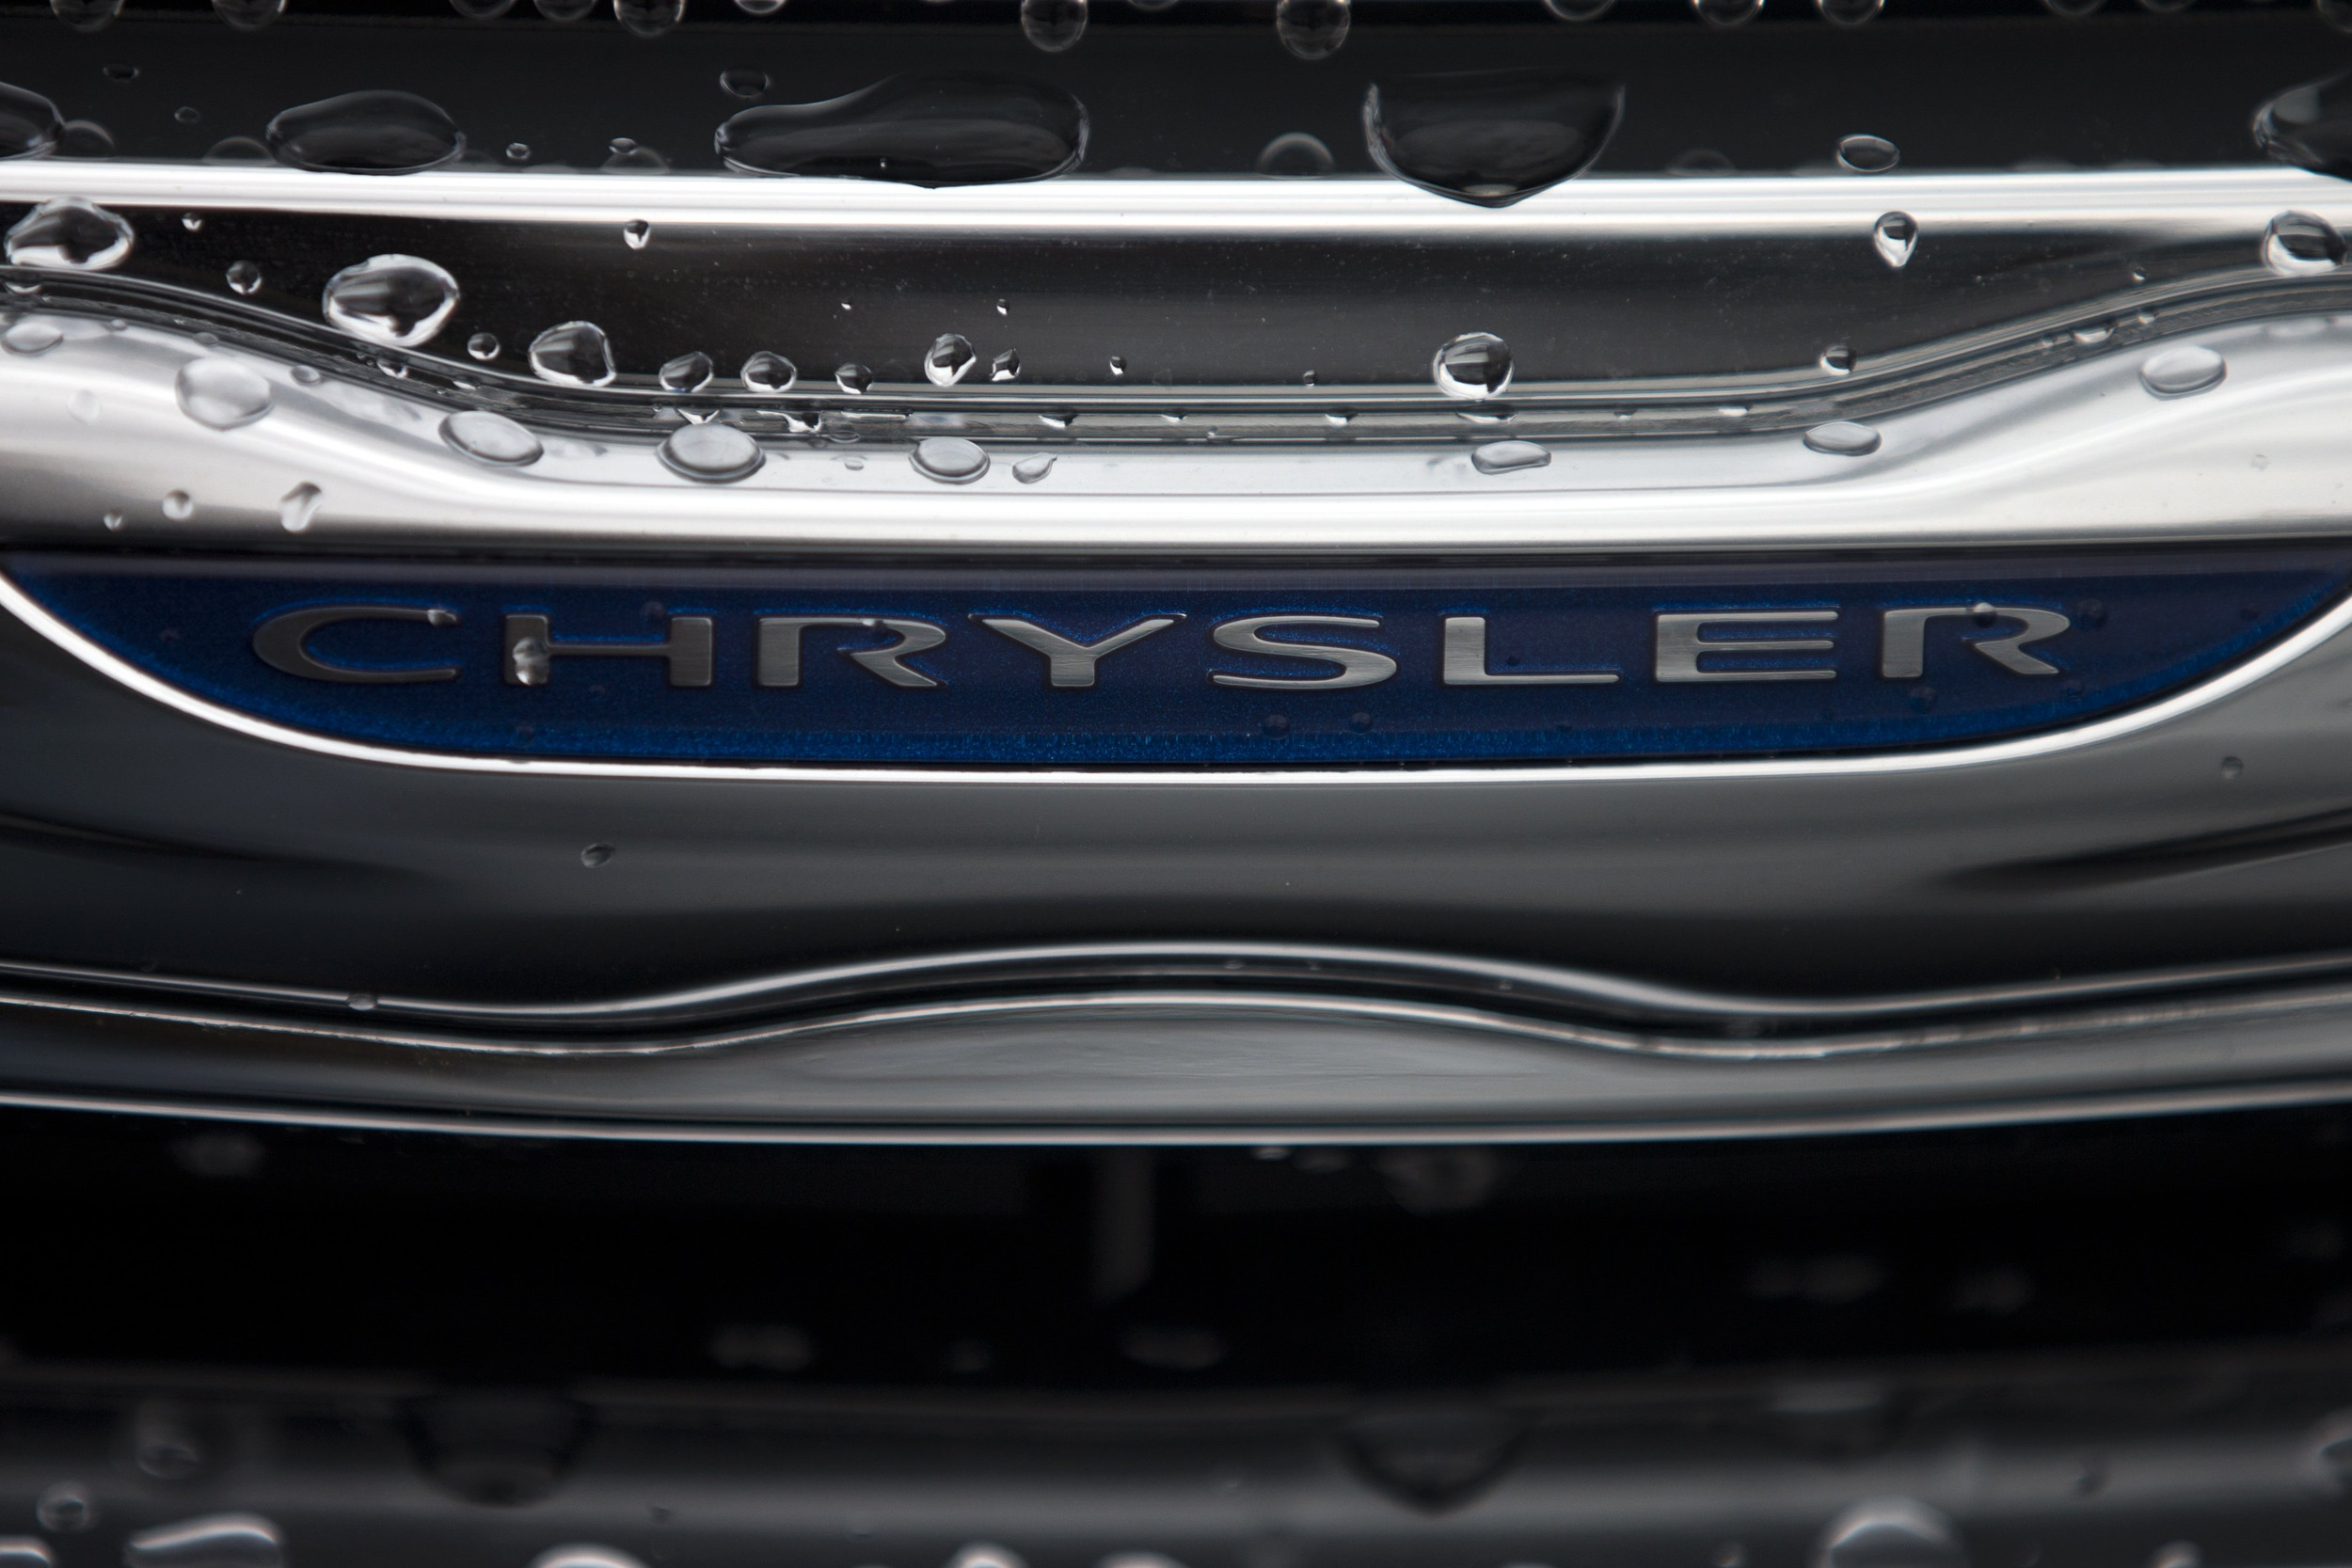 Chrysler May Face Big Fines for Safety Lapses